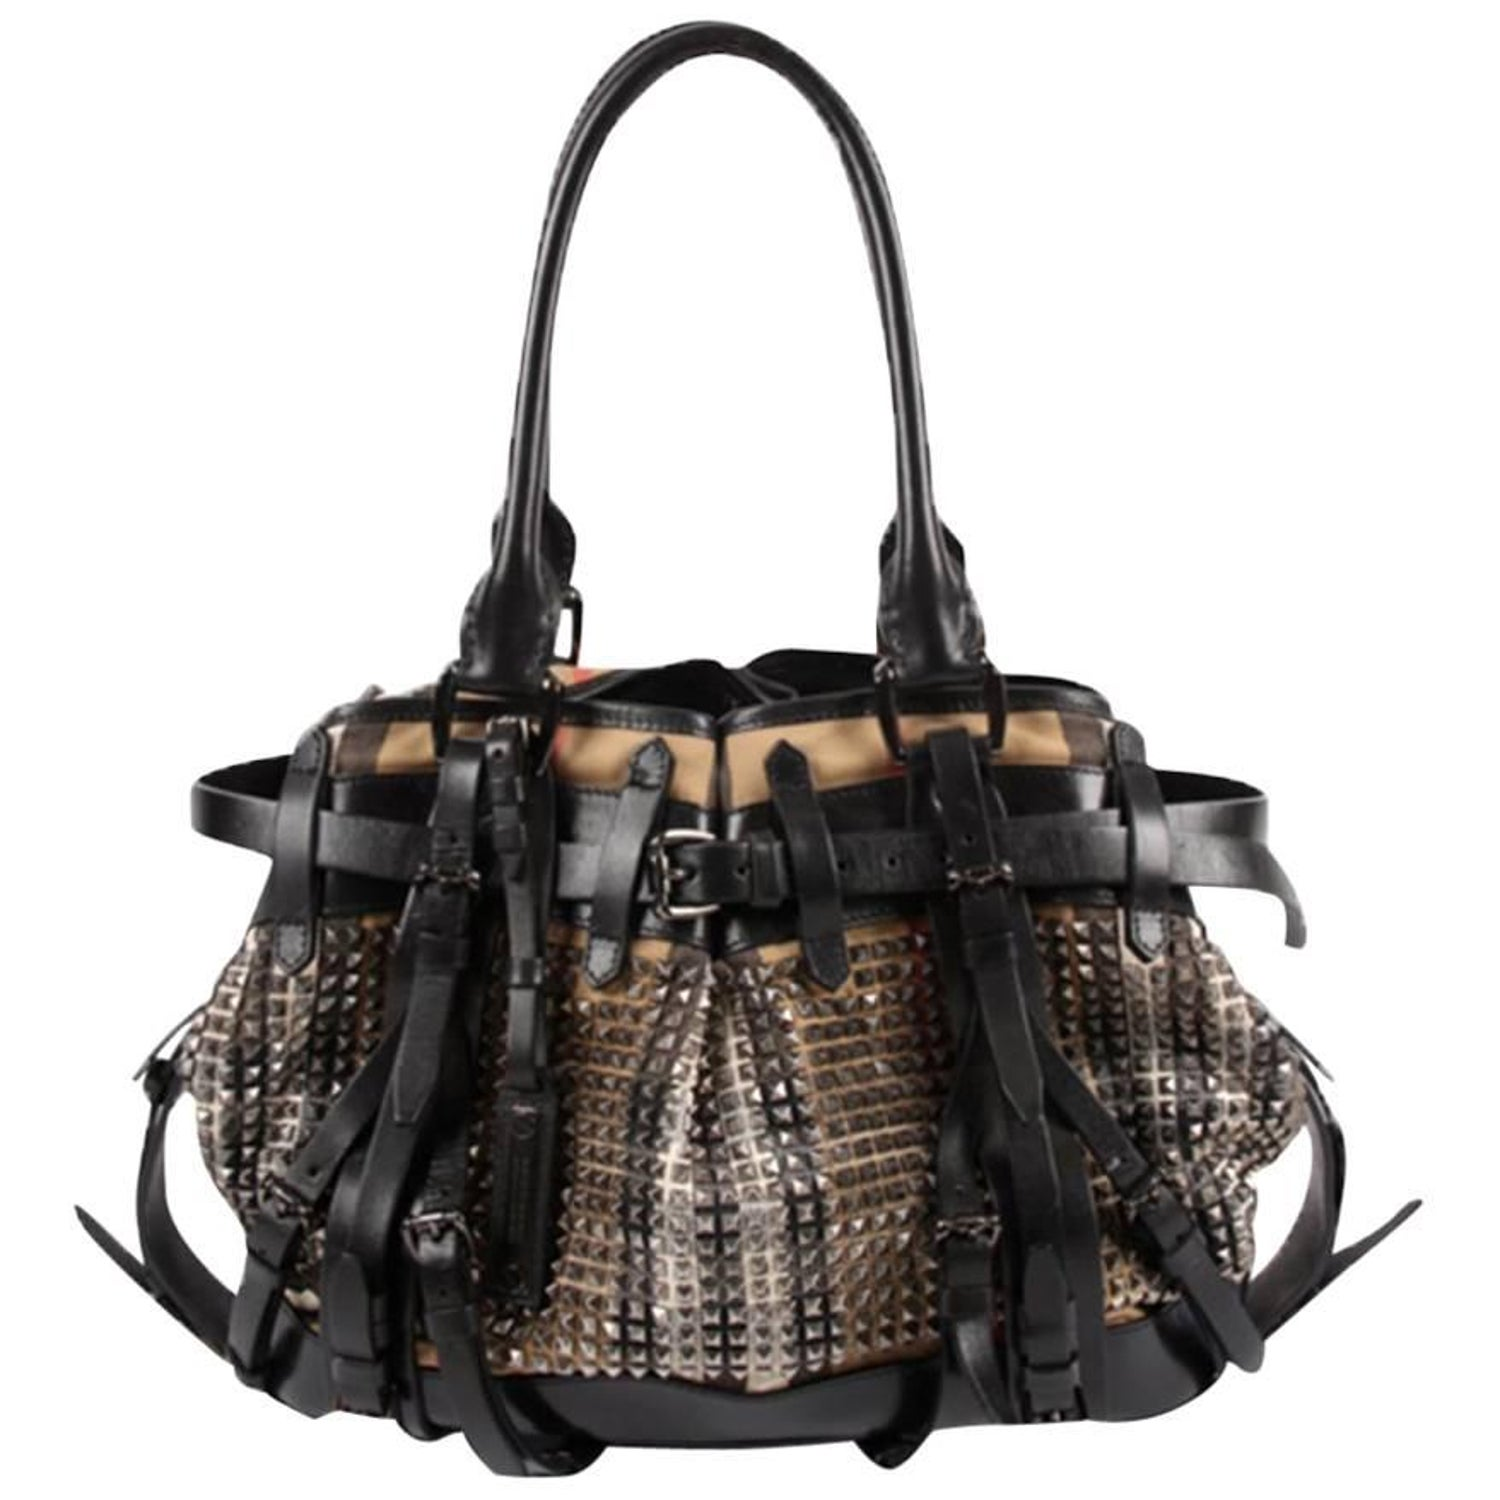 34ecea16737a Burberry Studded Classic Check Bag For Sale at 1stdibs